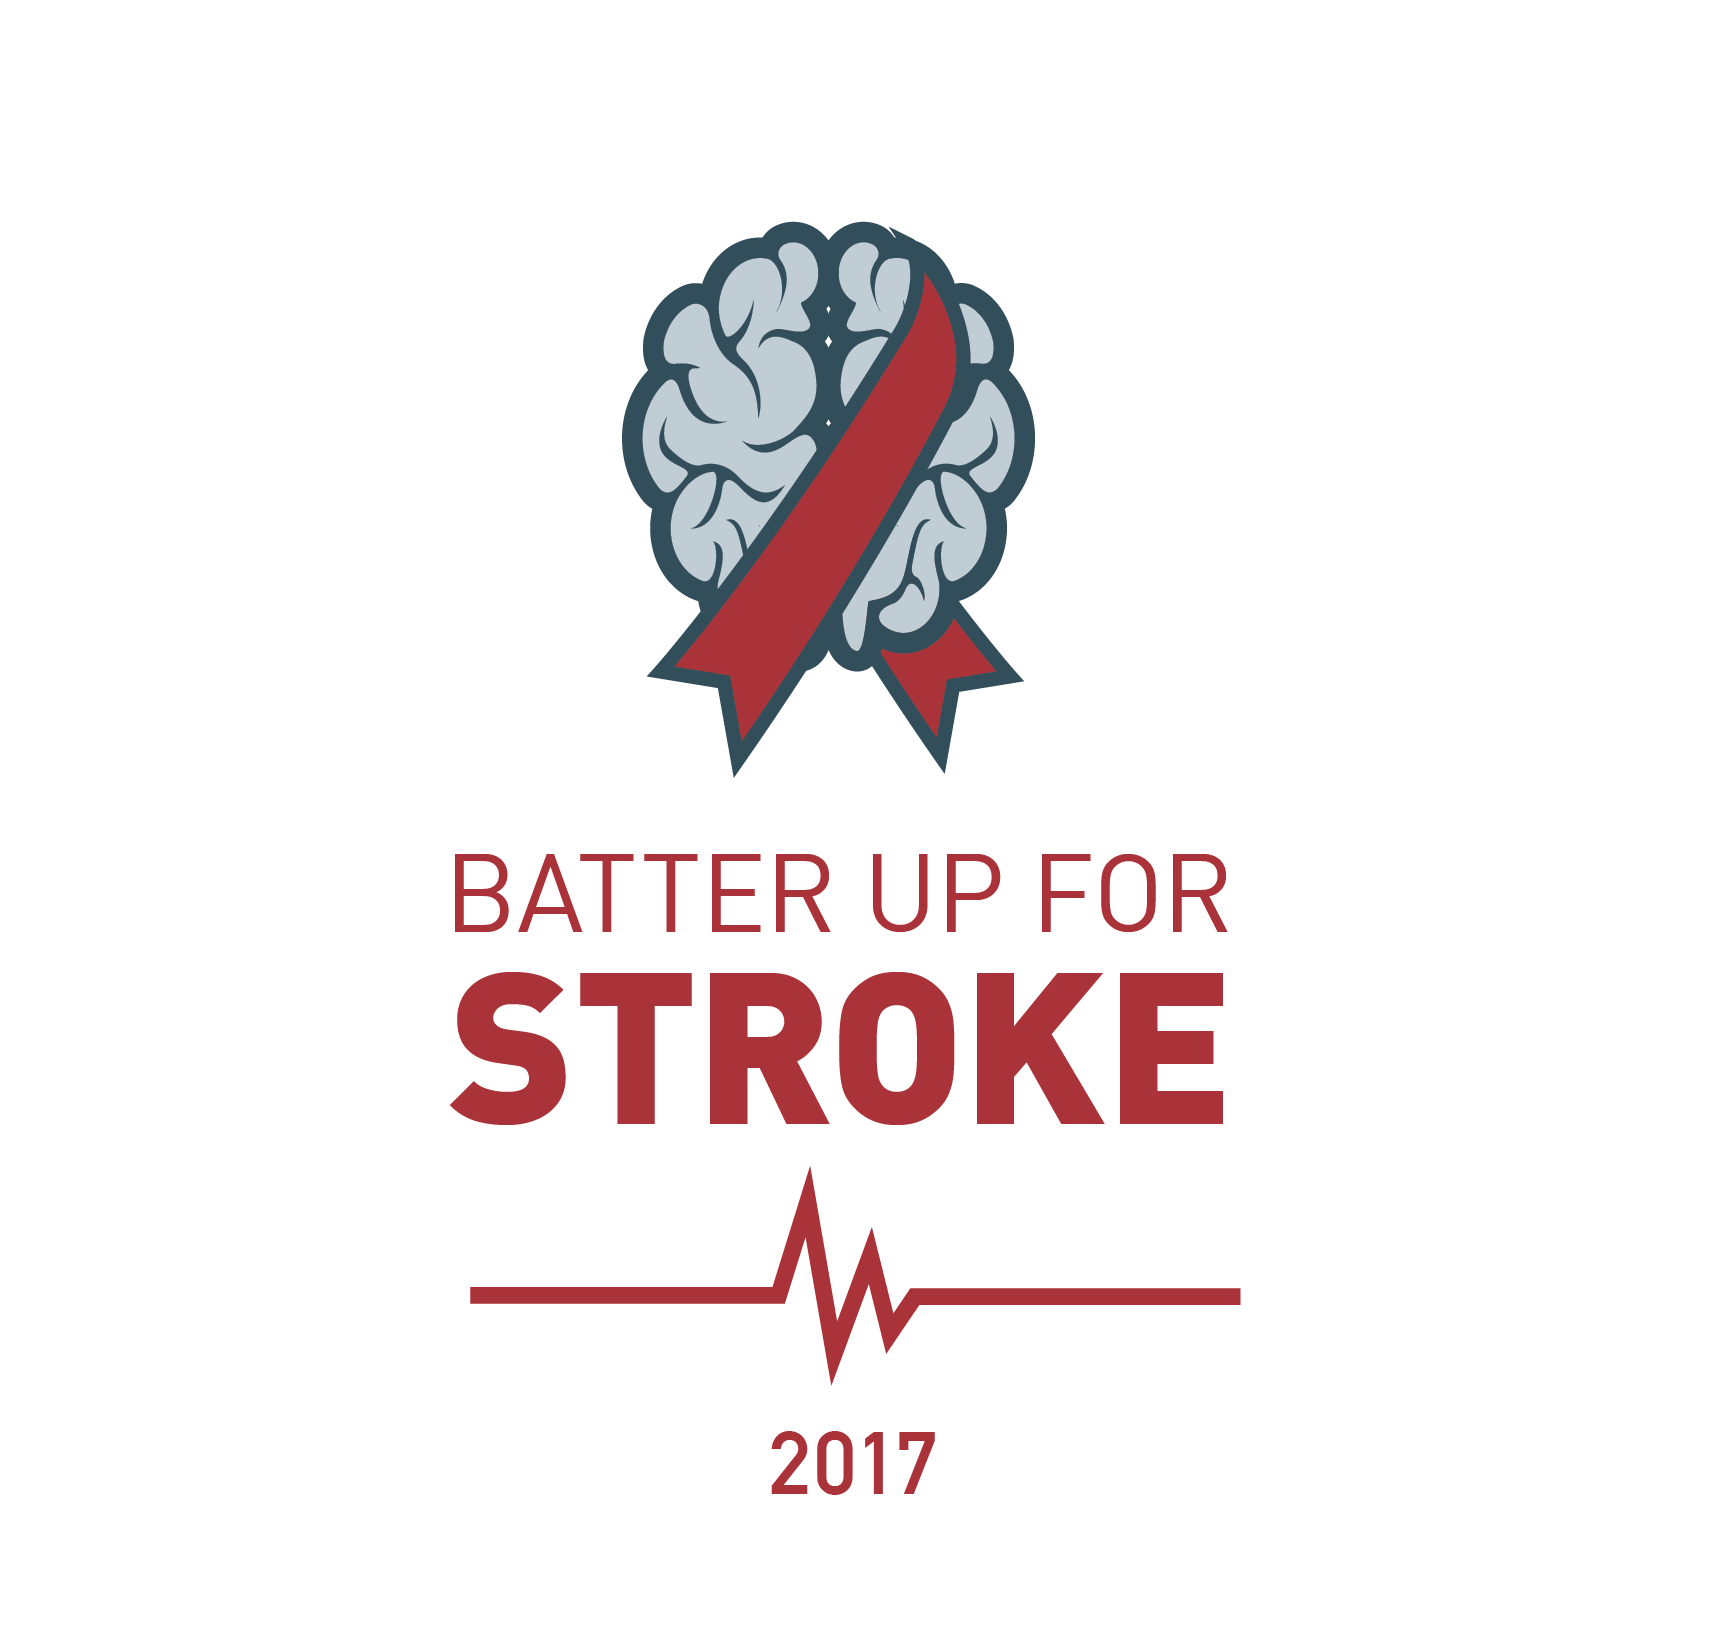 https://www.joeniekrofoundation.com/ways-to-give/batter-up-for-stroke/attachment/batter-up-for-stroke_logo_final_transparent-02/